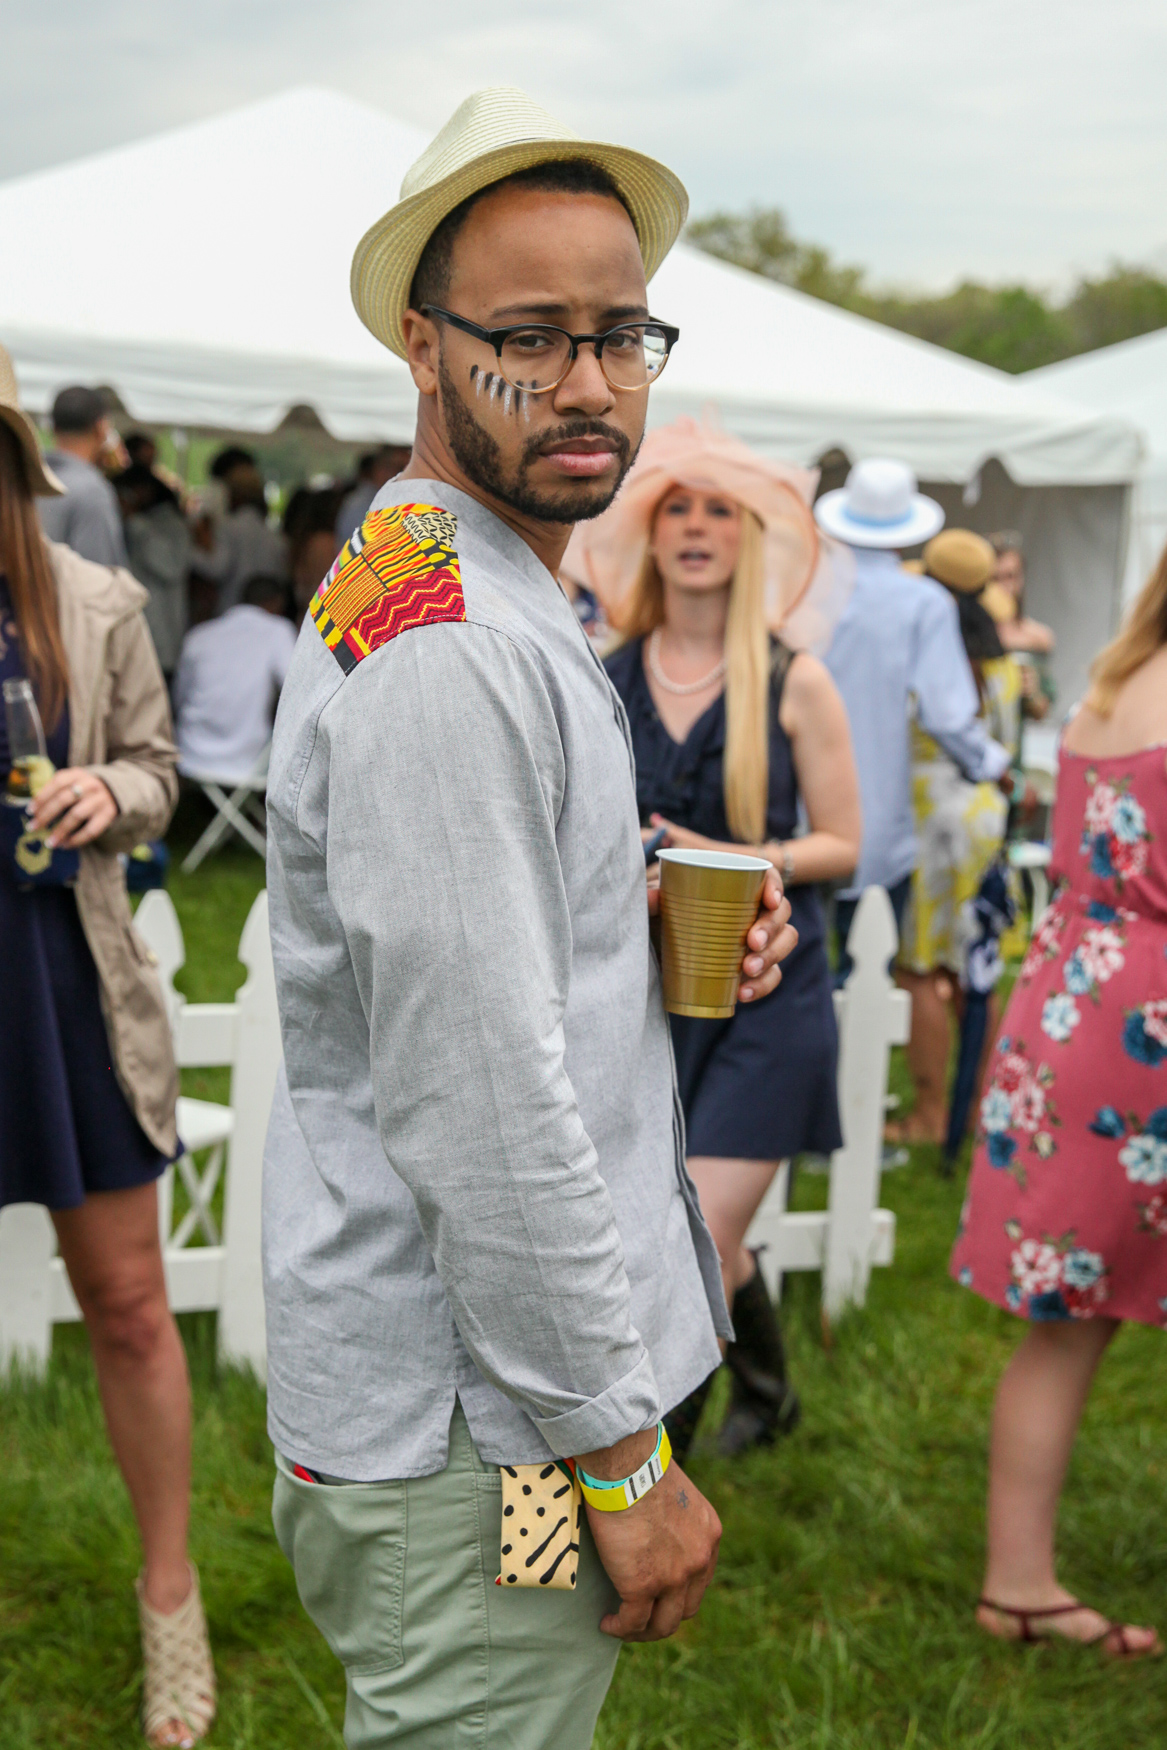 We're totally here for this unconventional men's look!{ }(Amanda Andrade-Rhoades/DC Refined)